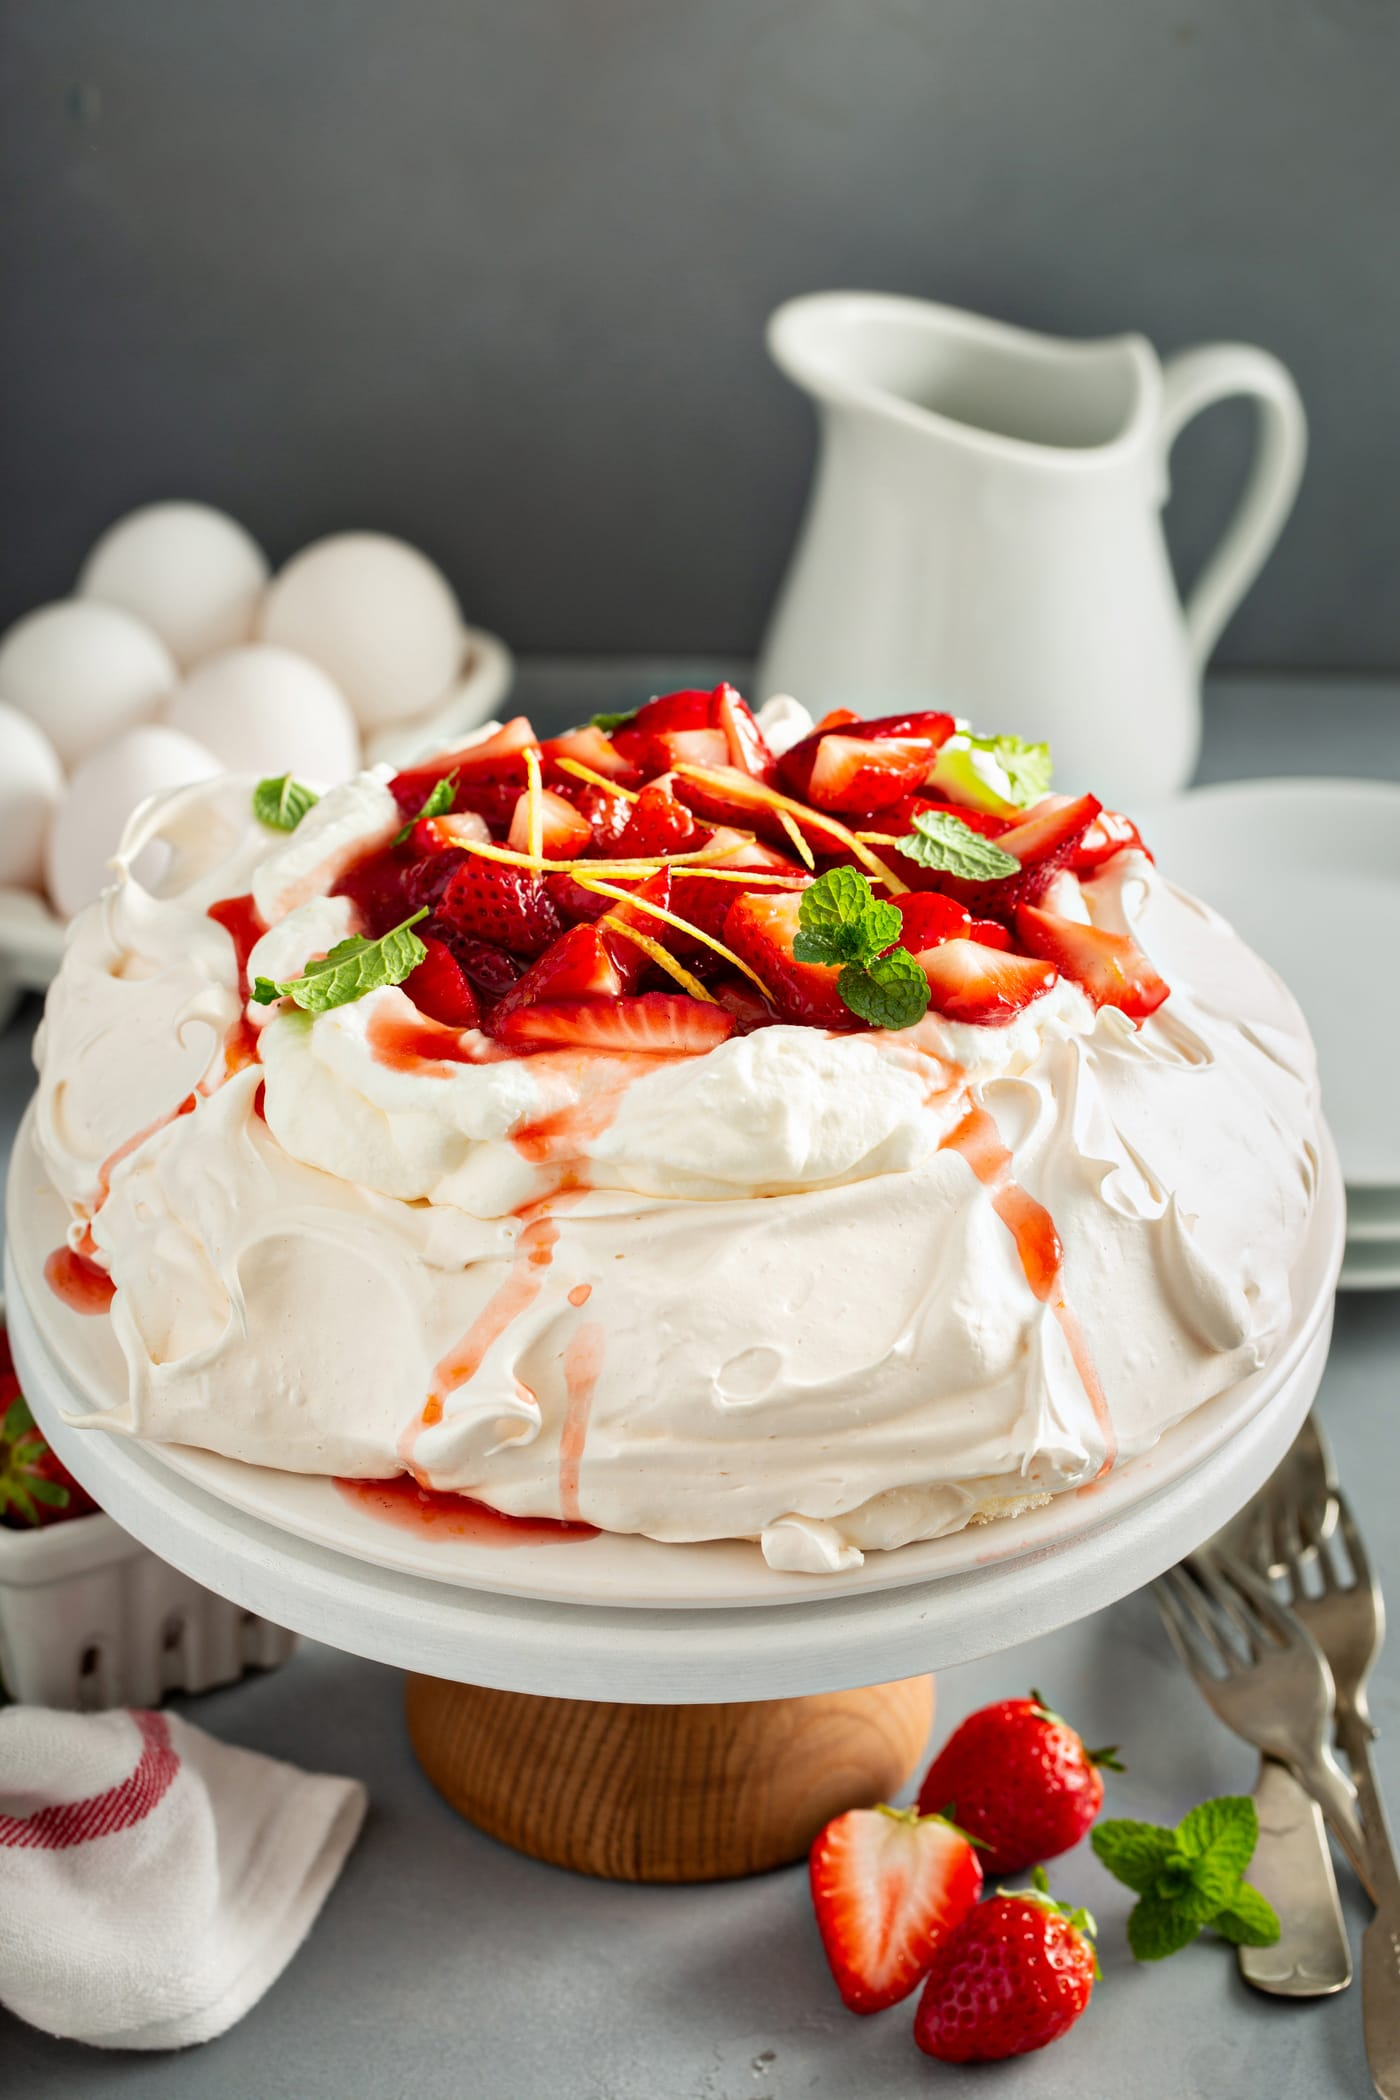 A serving plate containing pavlova topped with fresh whipped cream and sliced strawberries with slivers of lemon rind and mint leaves. There is a carton of white eggs, a carton of white eggs, a white pitcher and a stack of white dessert plates are in the background.